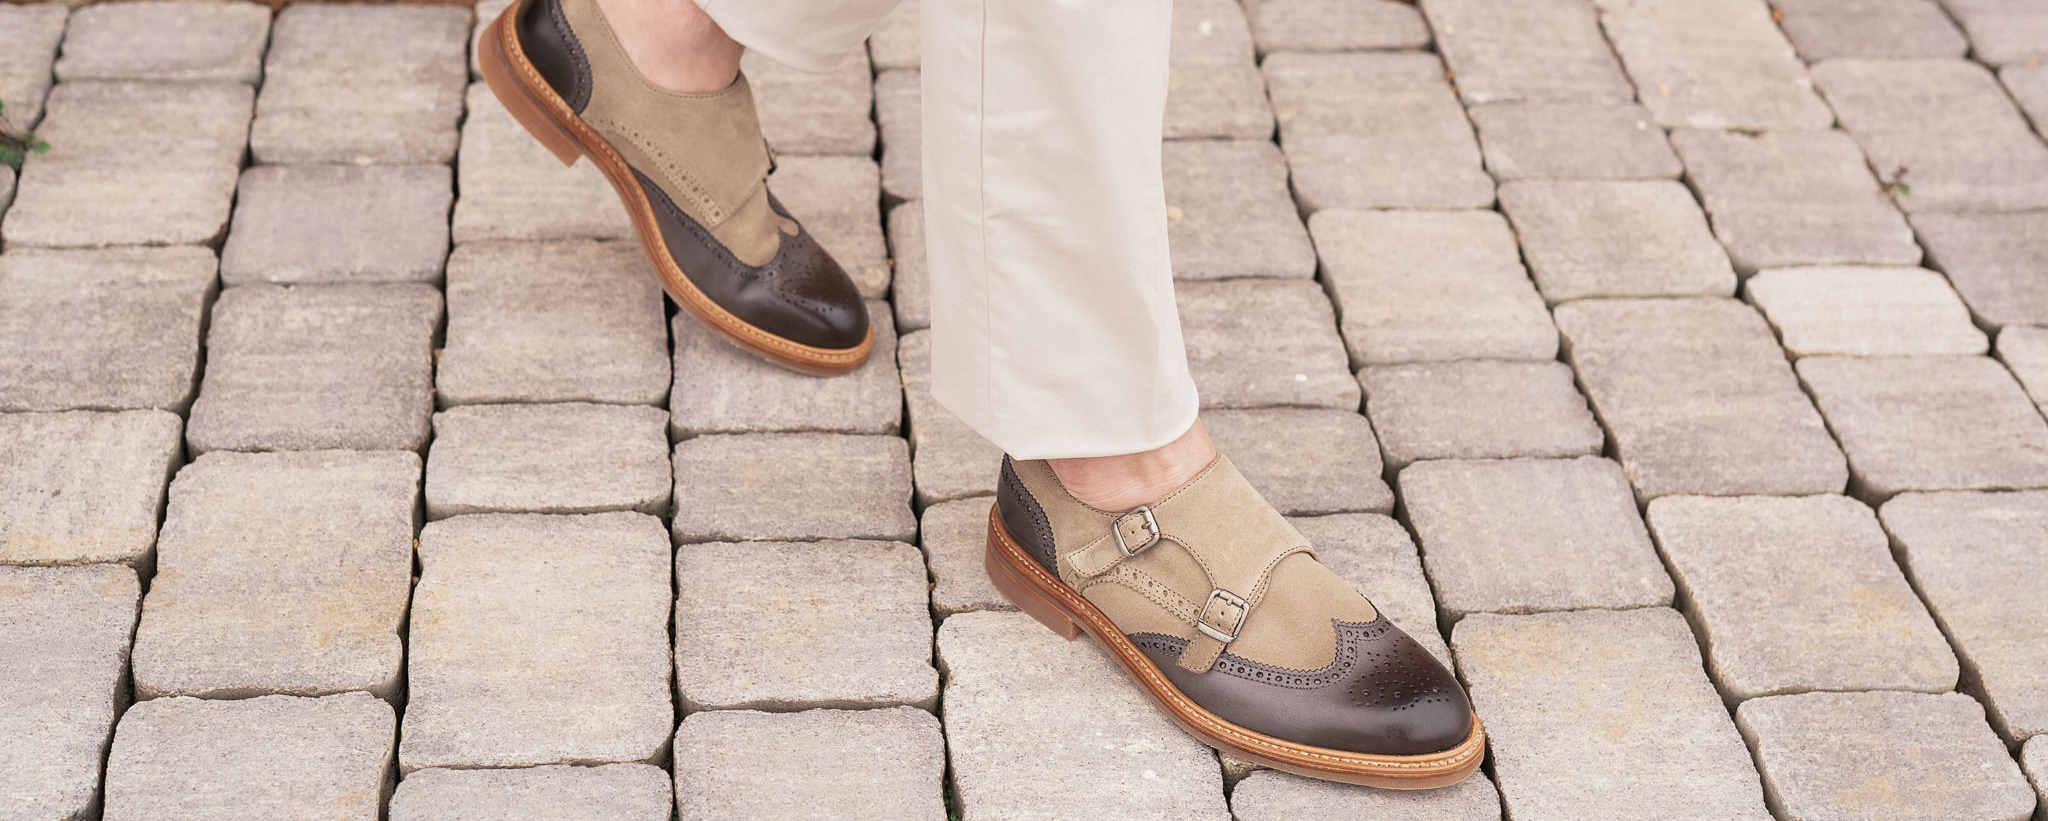 Women and Men shoes | Online Shoe Store TASCON